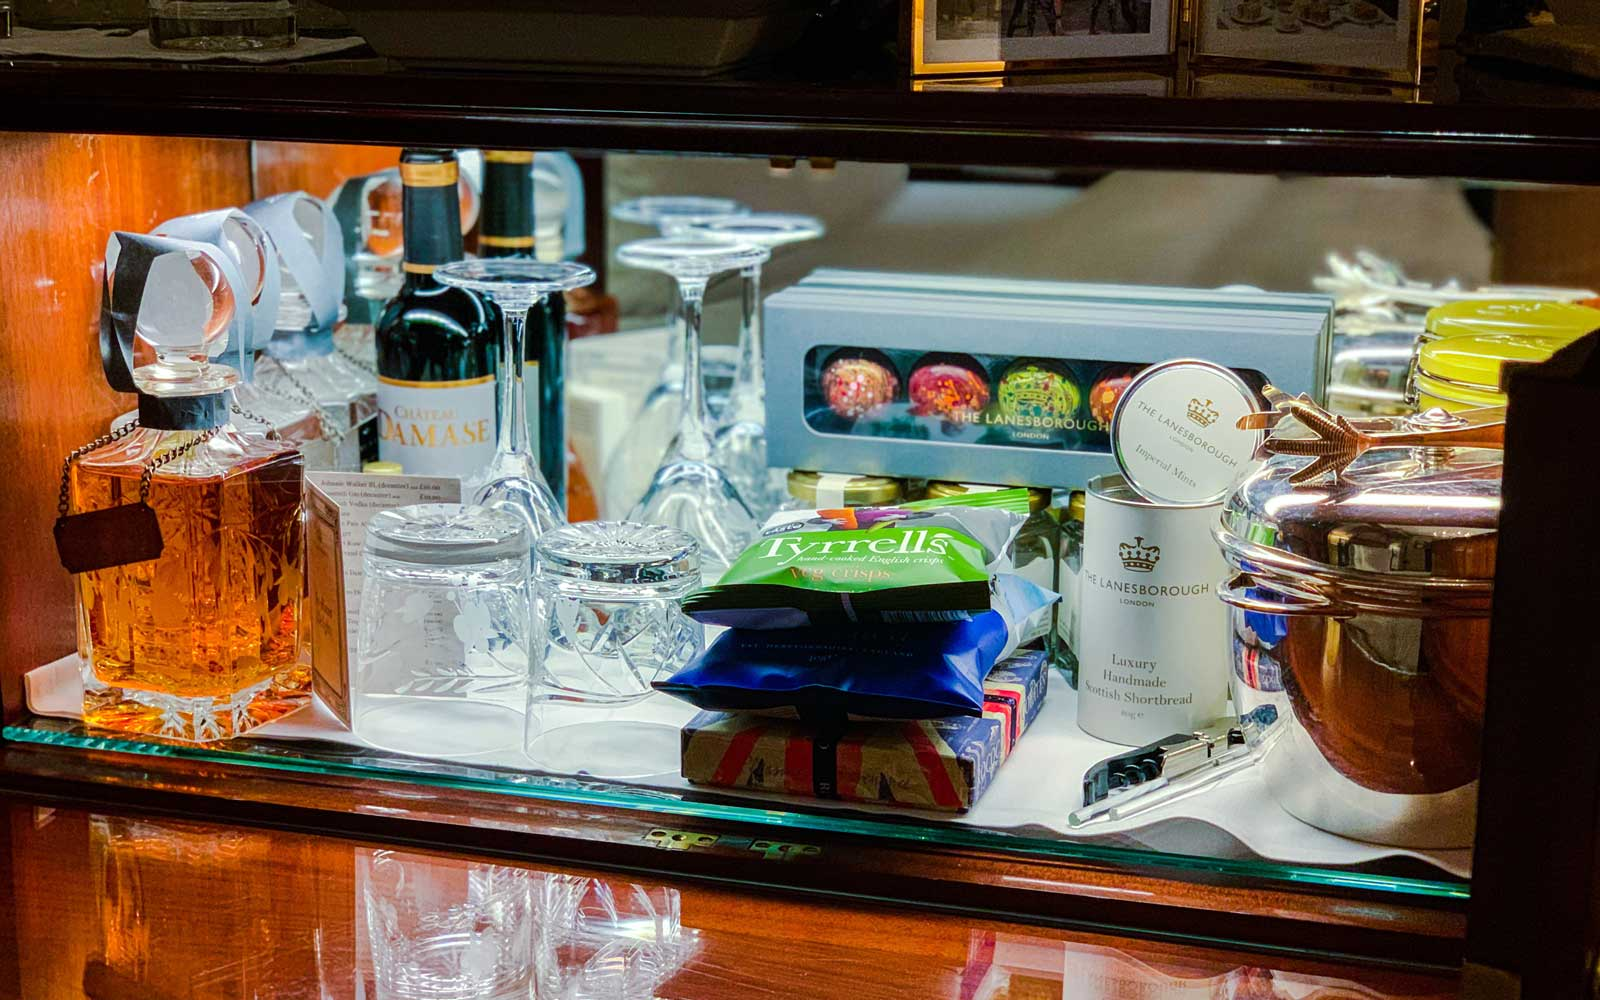 Pictured are some of the in-room amenities guests will find.